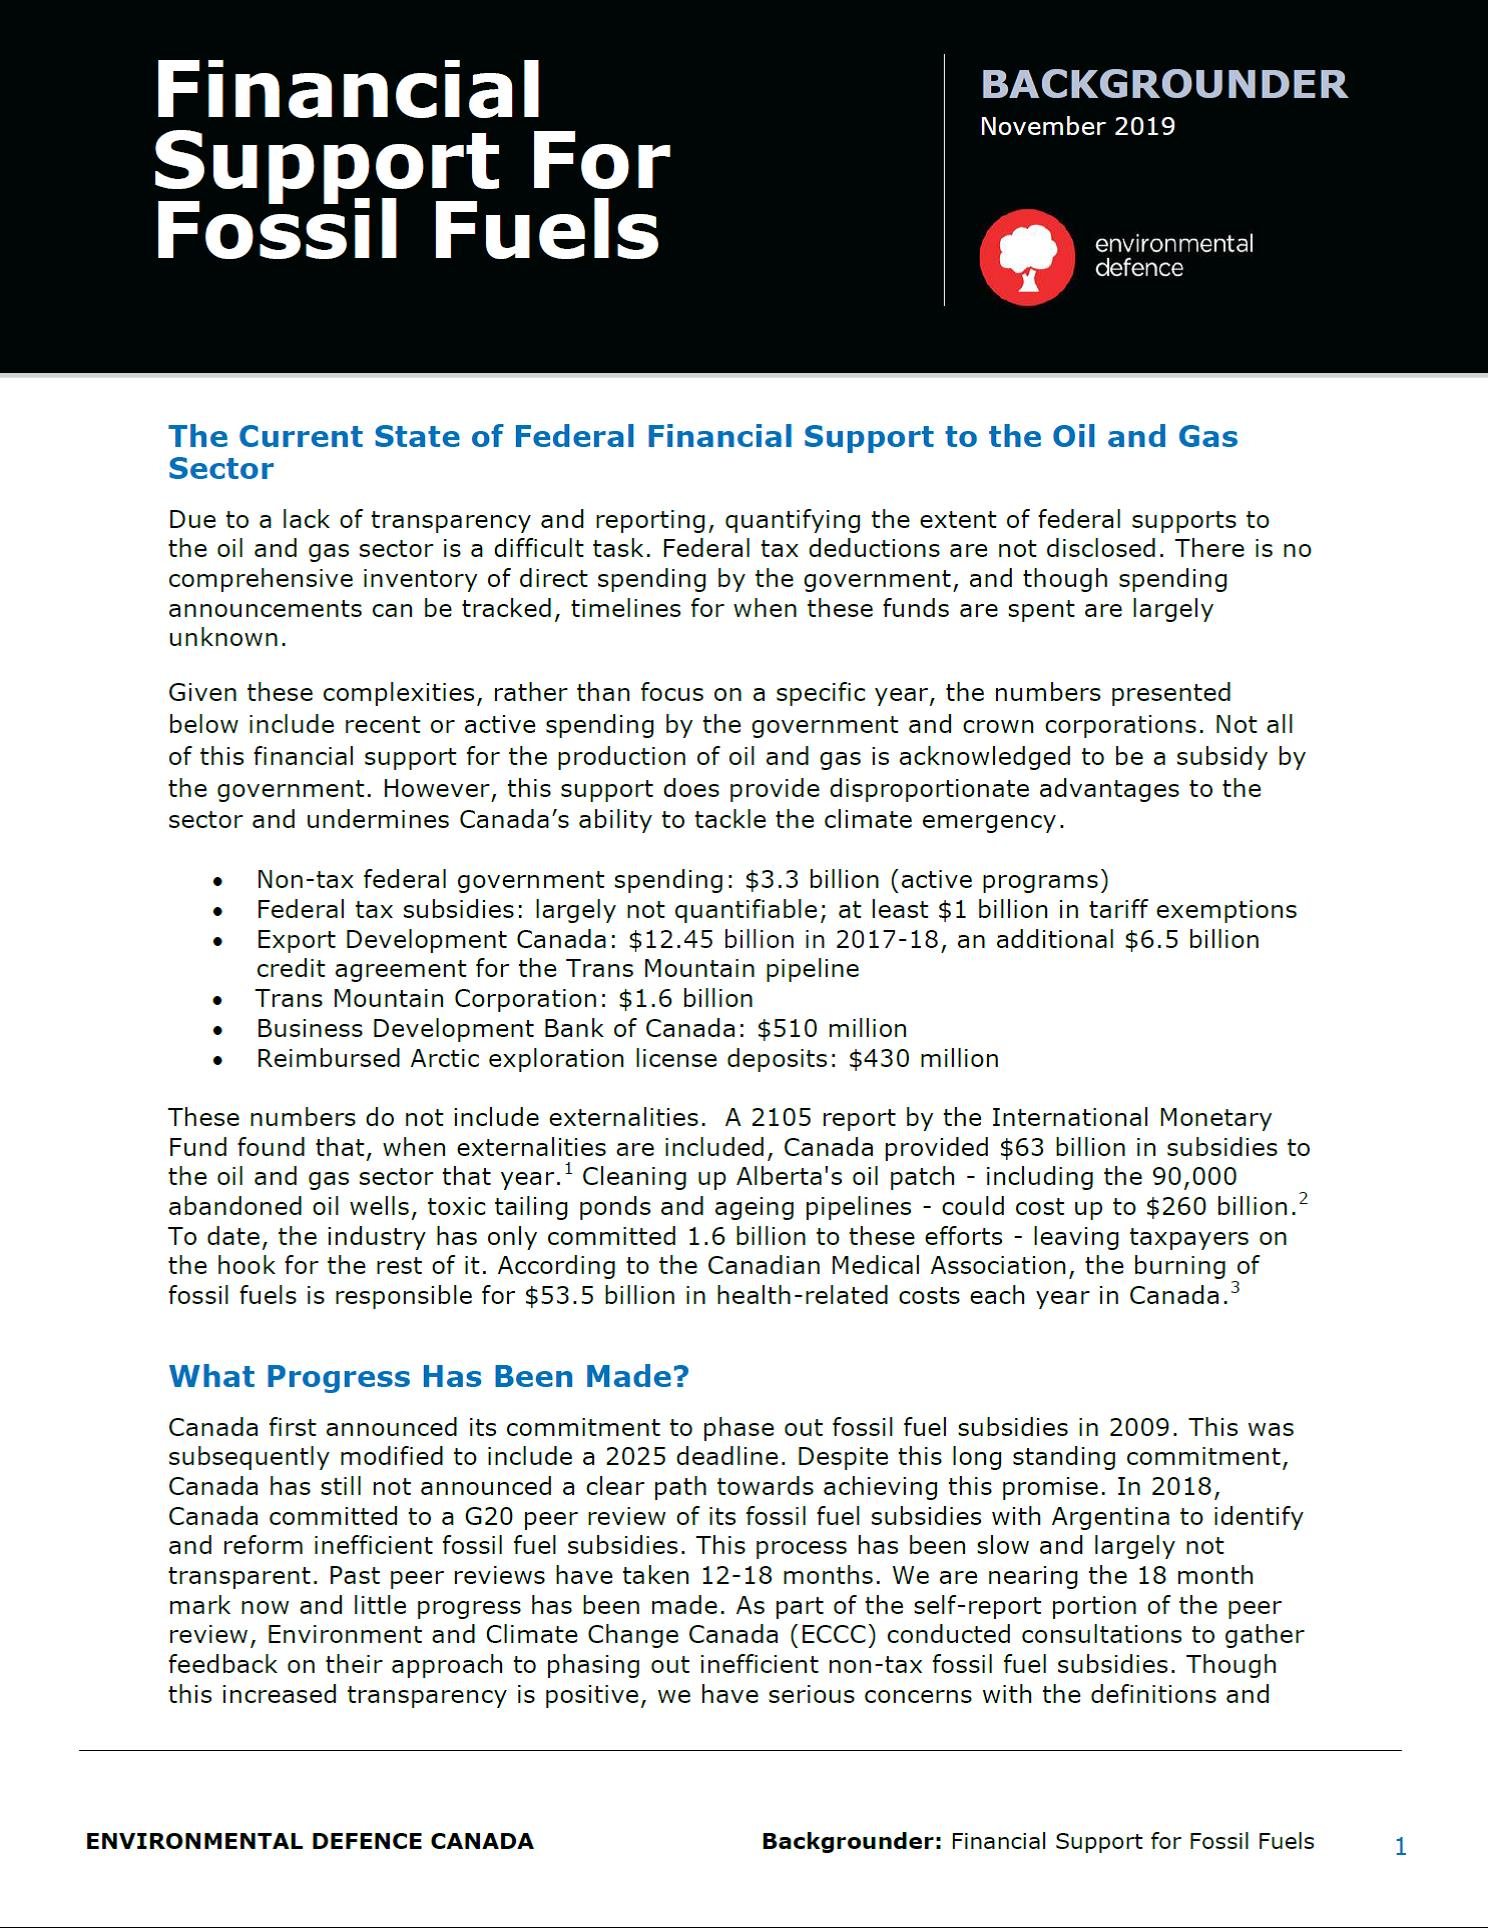 The cover of Environmental Defence's backgrounder on federal fossil fuel subsidies